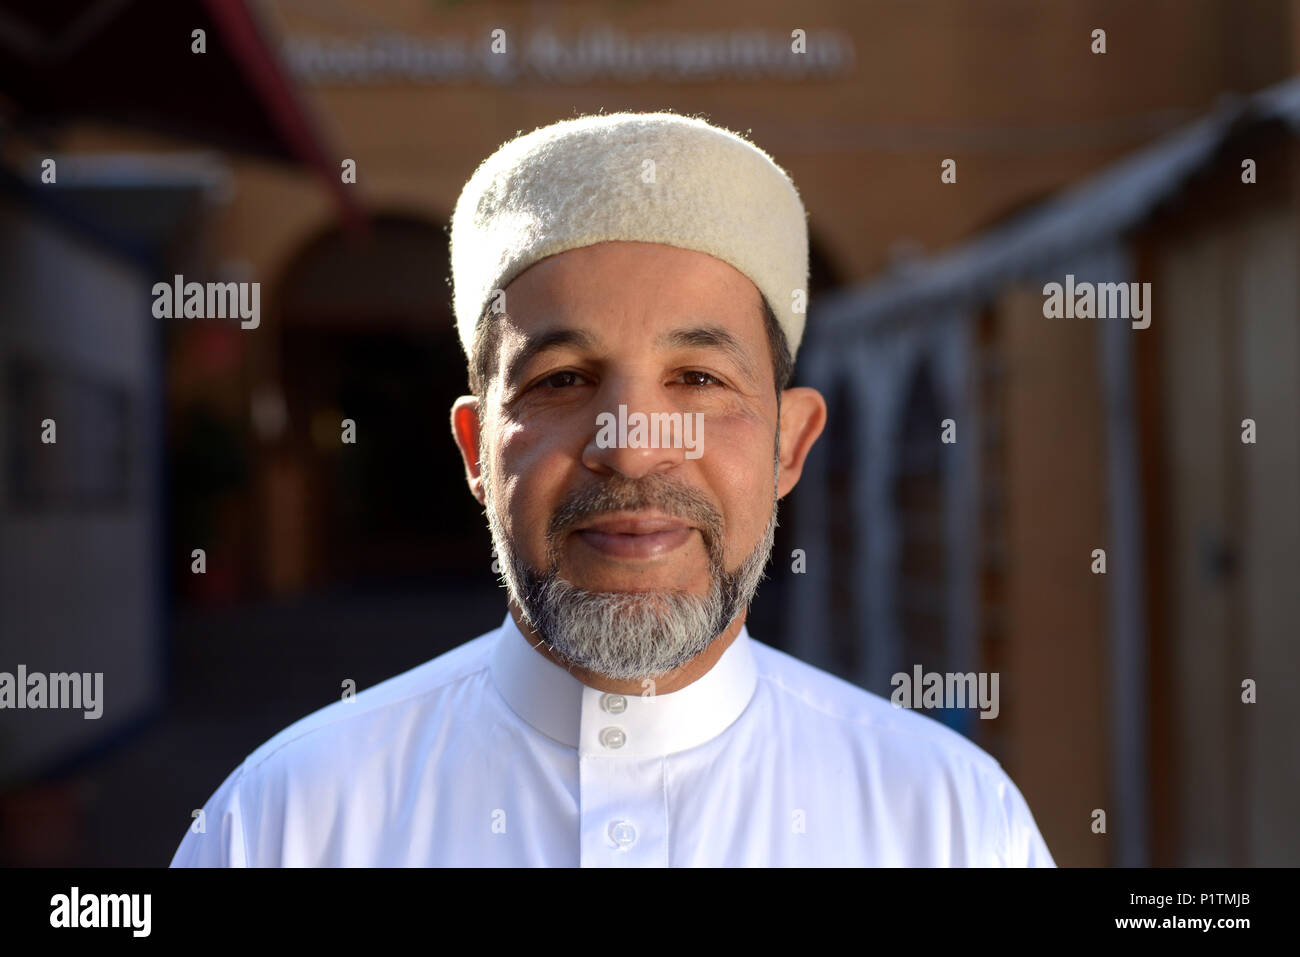 Berlin, Germany, Imam Taha Sabri heads the Dar Assalam Mosque - Stock Image